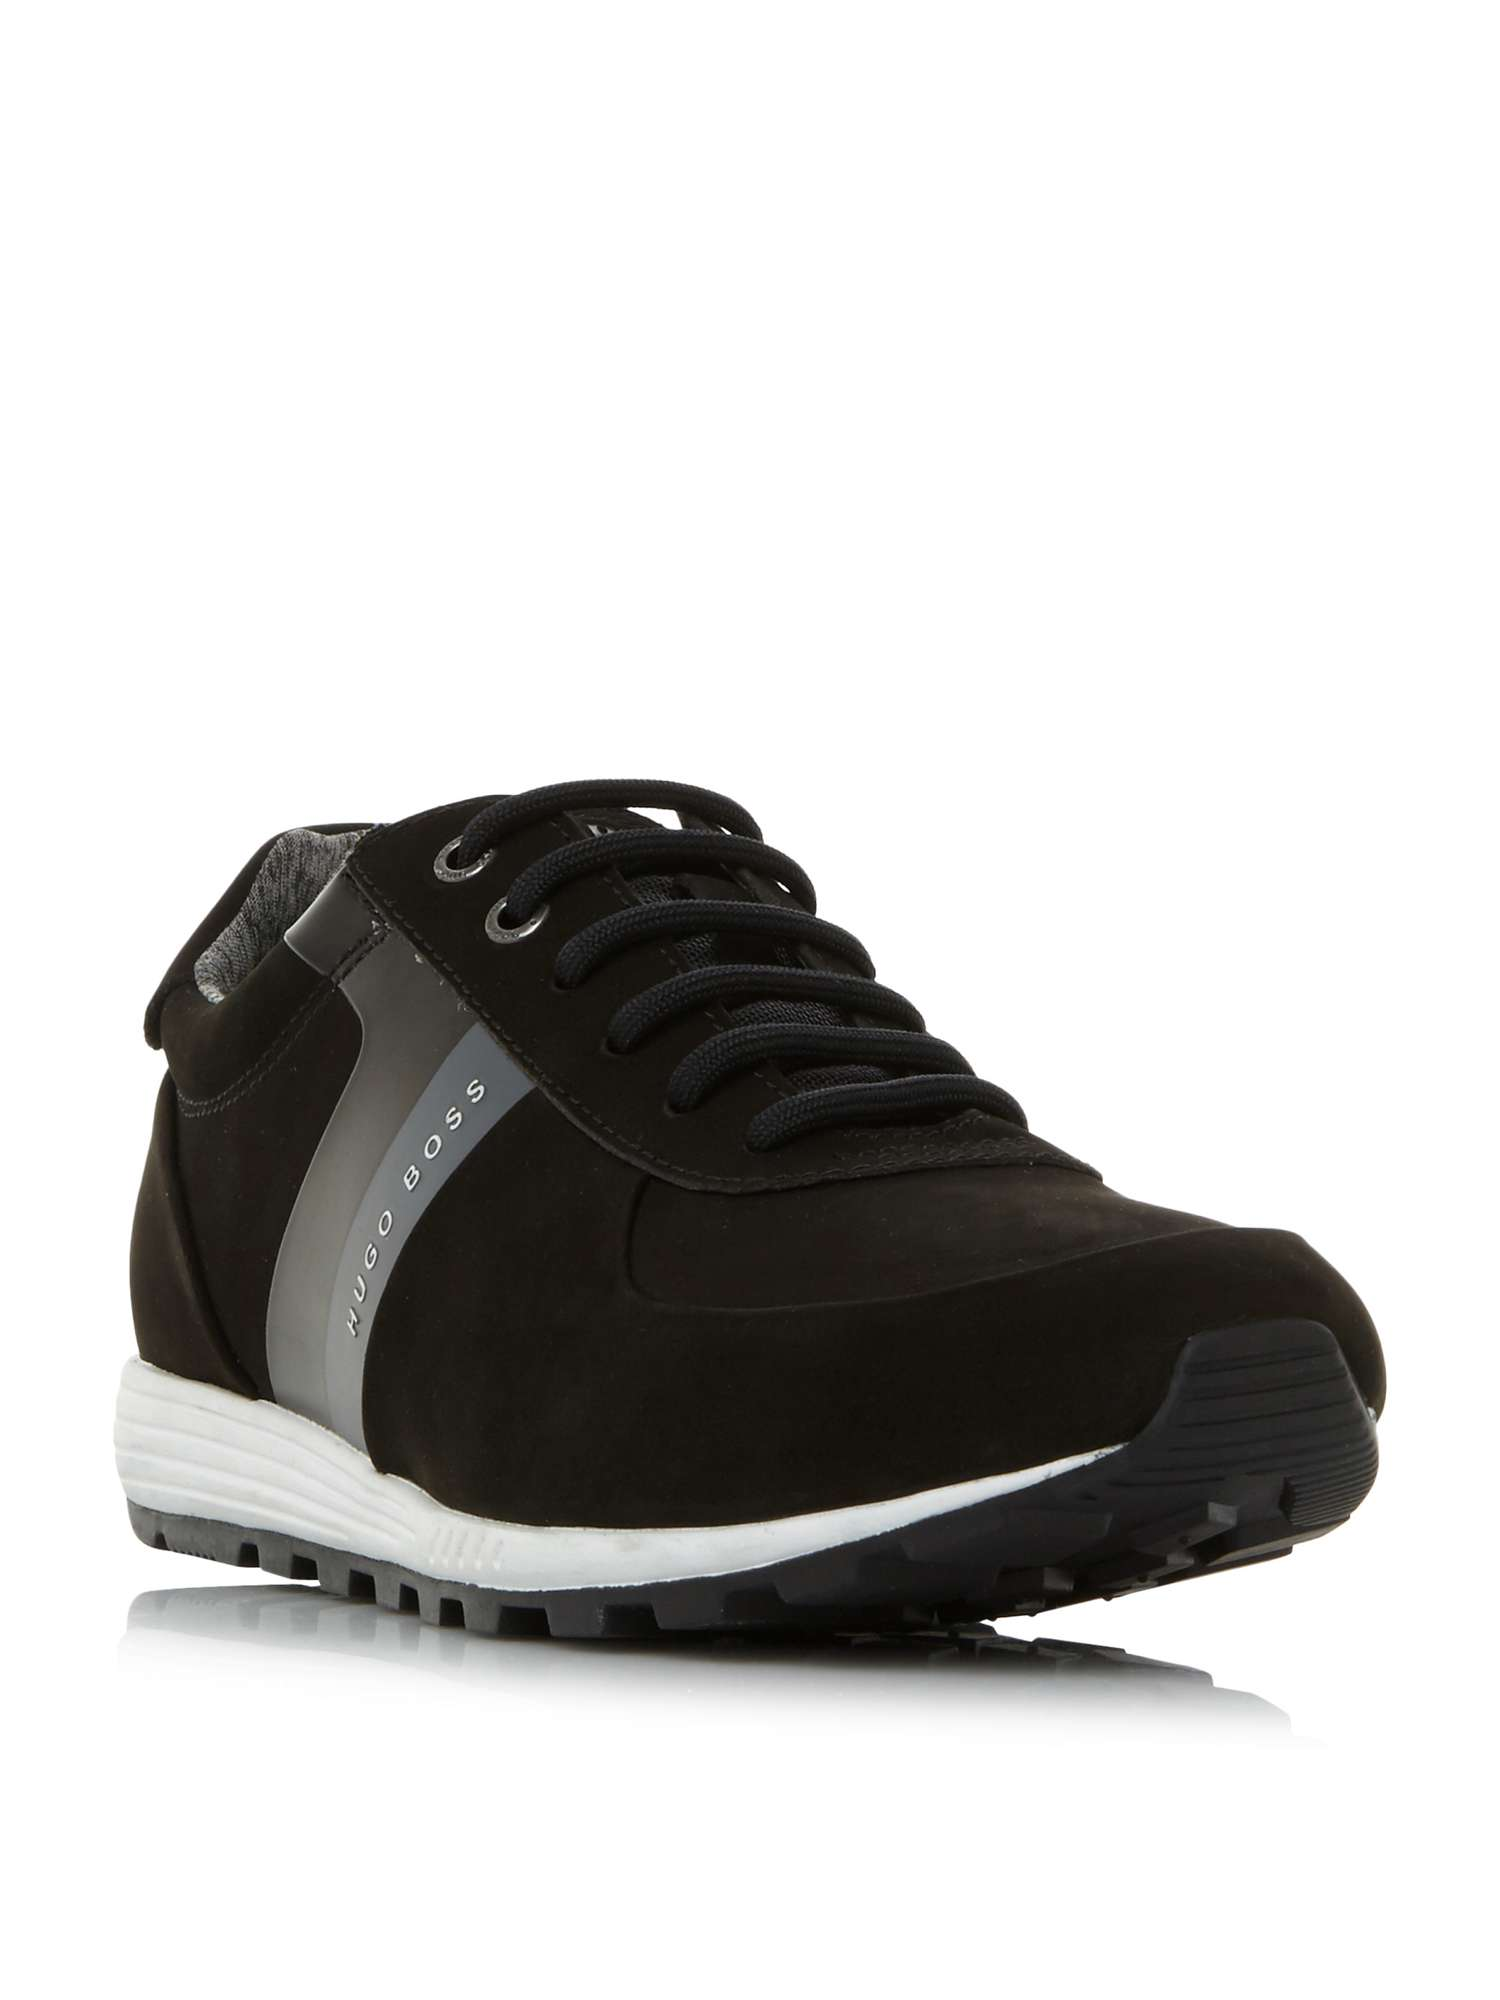 Hugo Boss Blast Run Heat Emboss Trainers £152